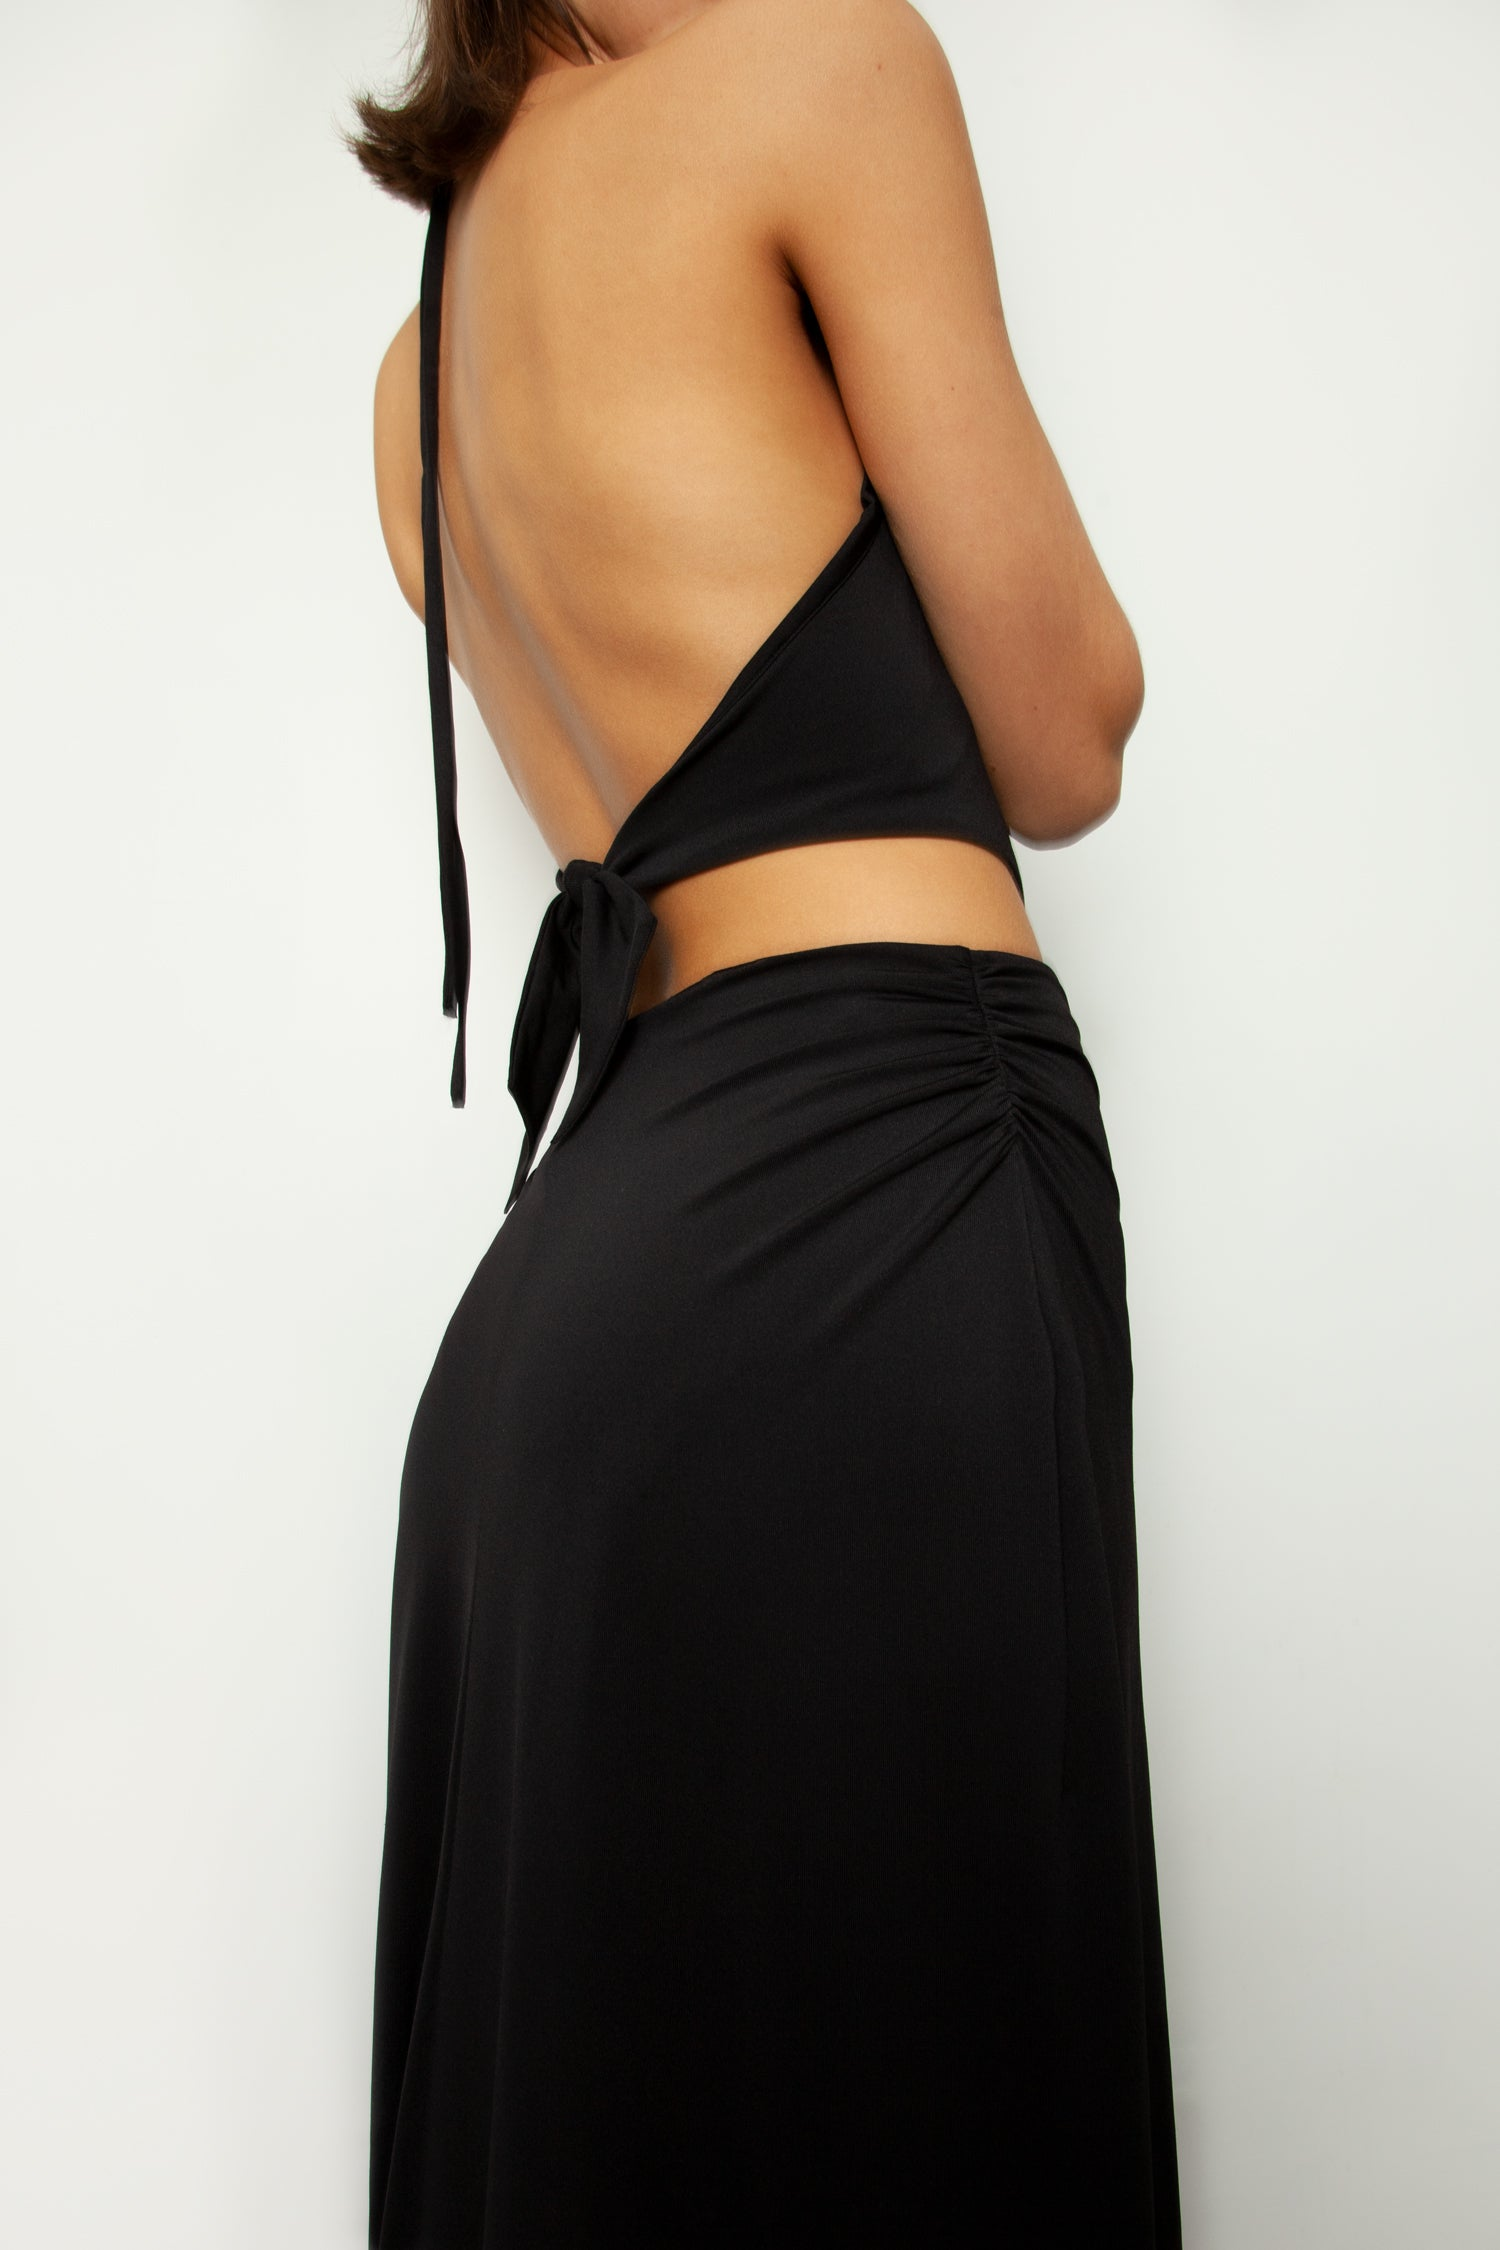 HALTER TIE BACK DRESS